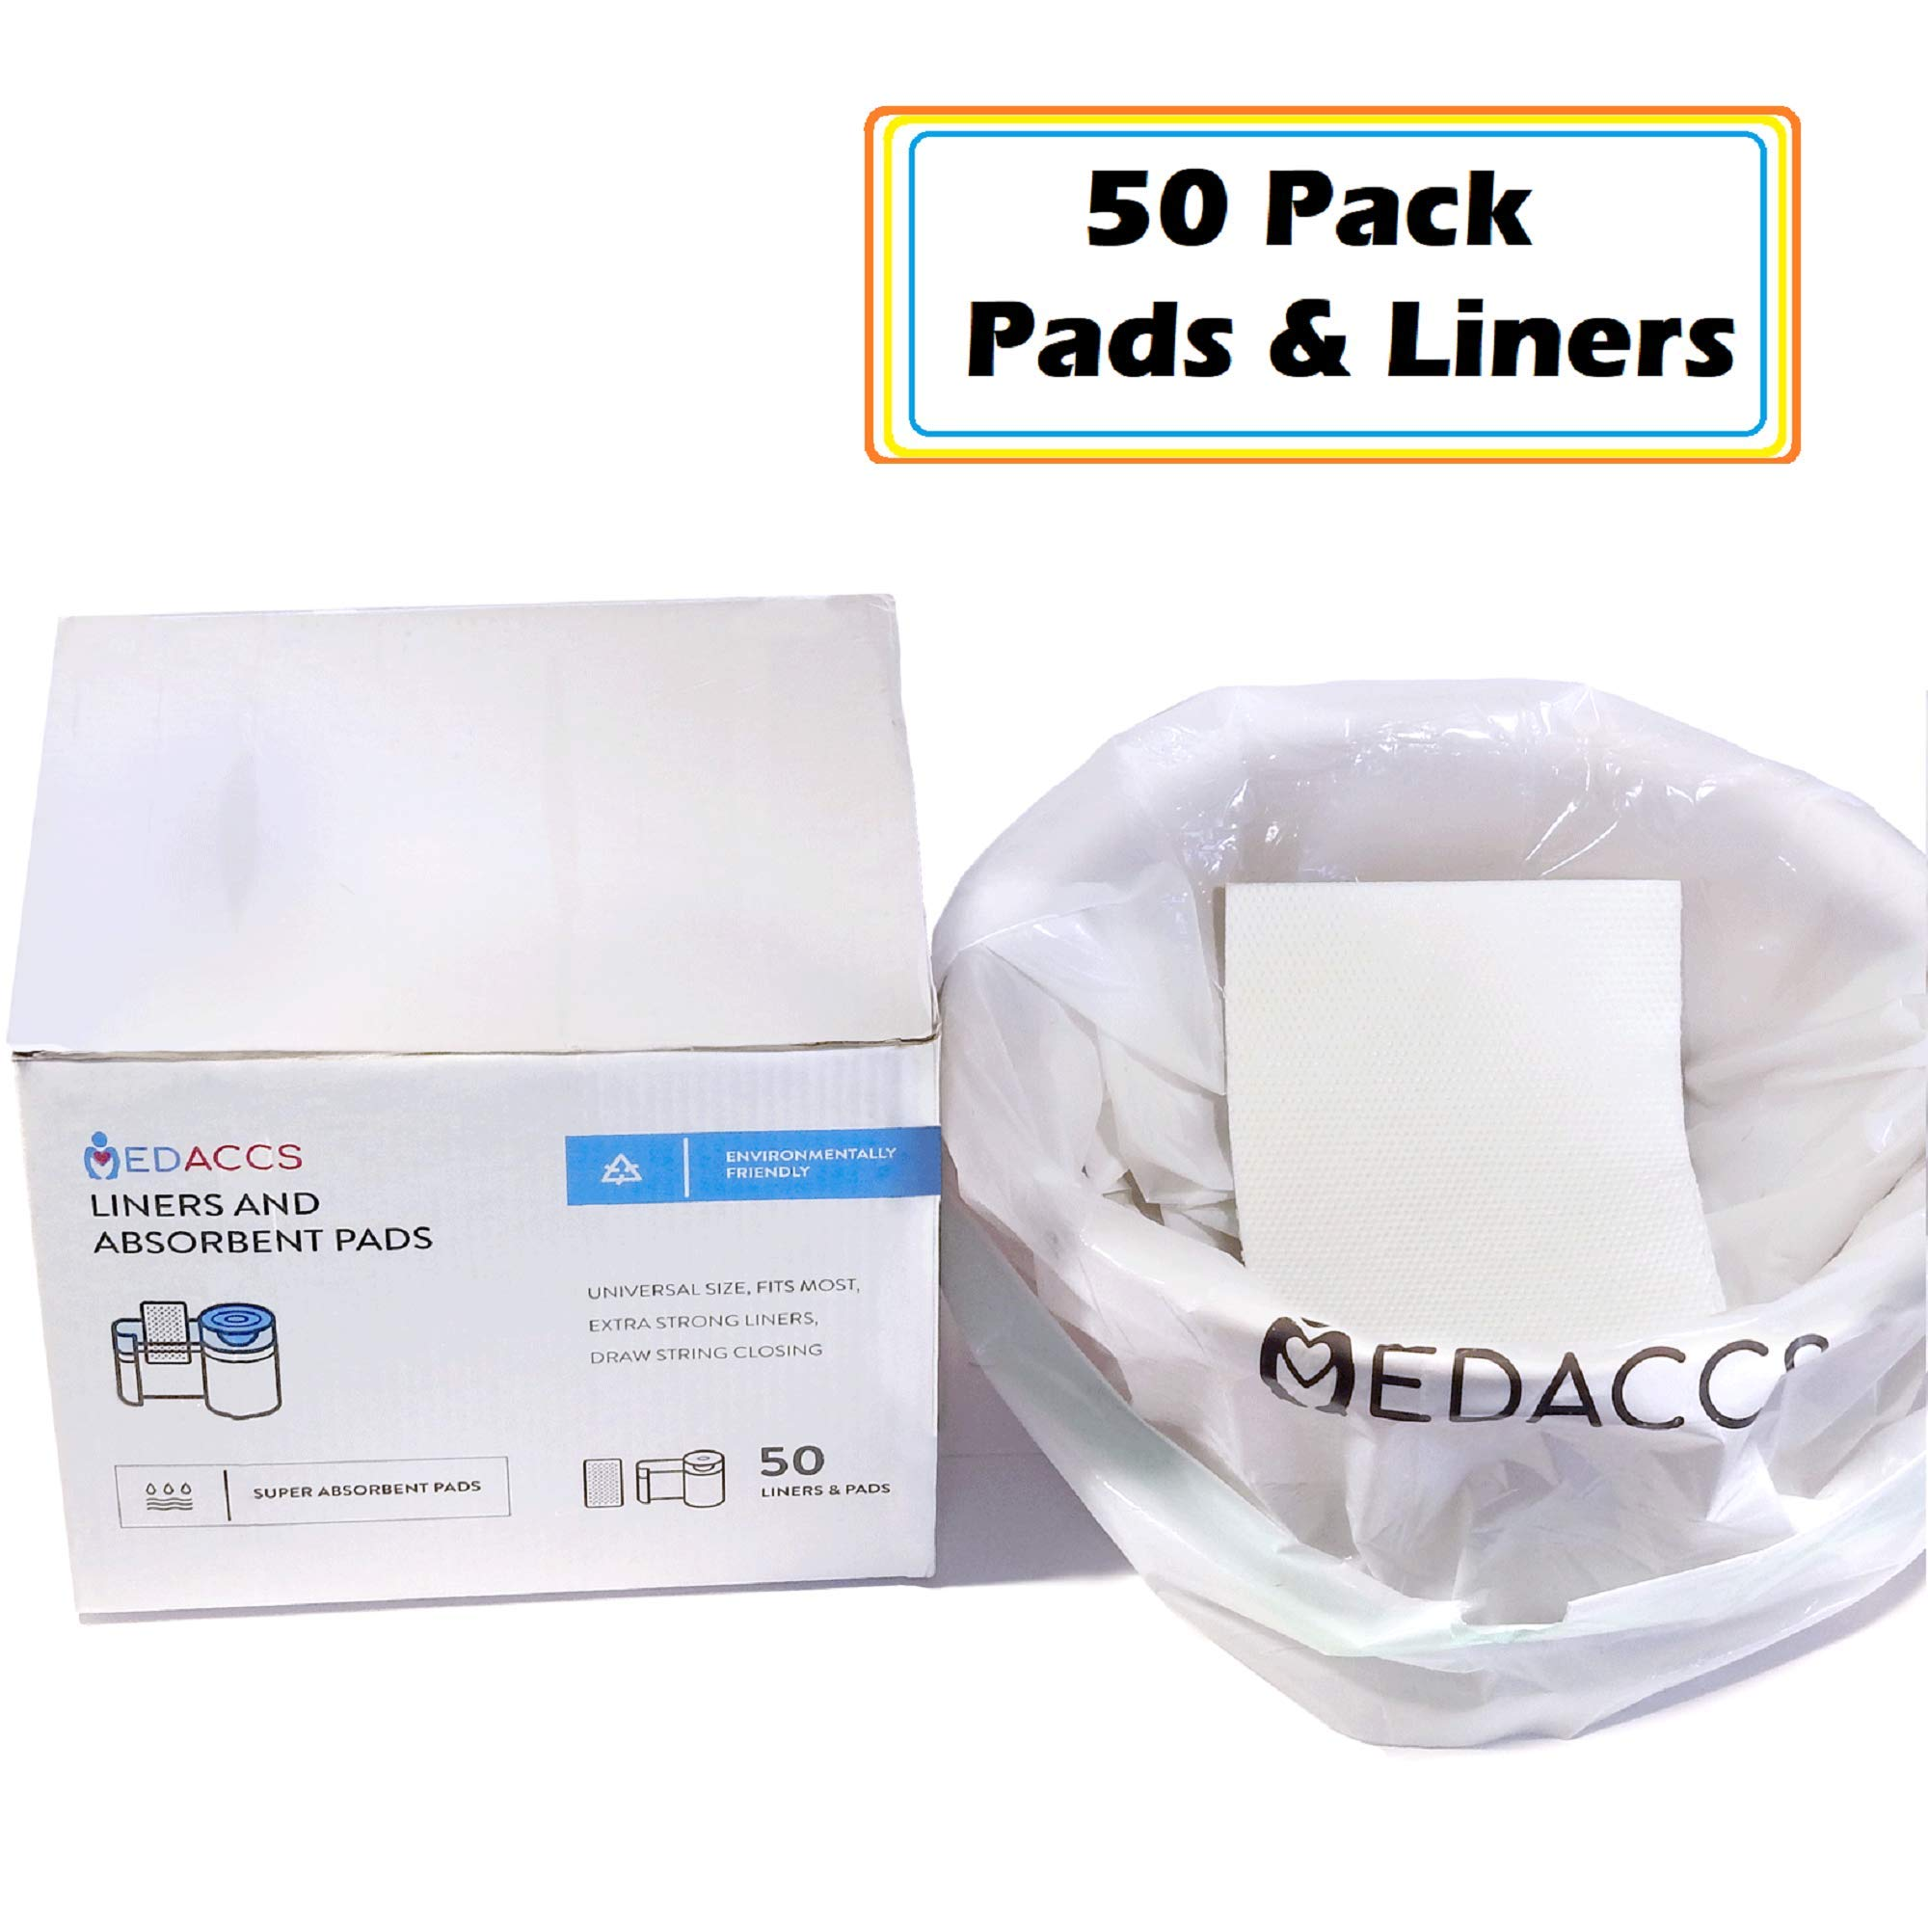 Bedside Commode Liners and Absorbent Pads 50 Pack - for Elderly, Sick Patients, Nurses - Bathroom Set for Toilets, Buckets, Pails - Leak-Proof, Eco-Friendly, Biodegradable